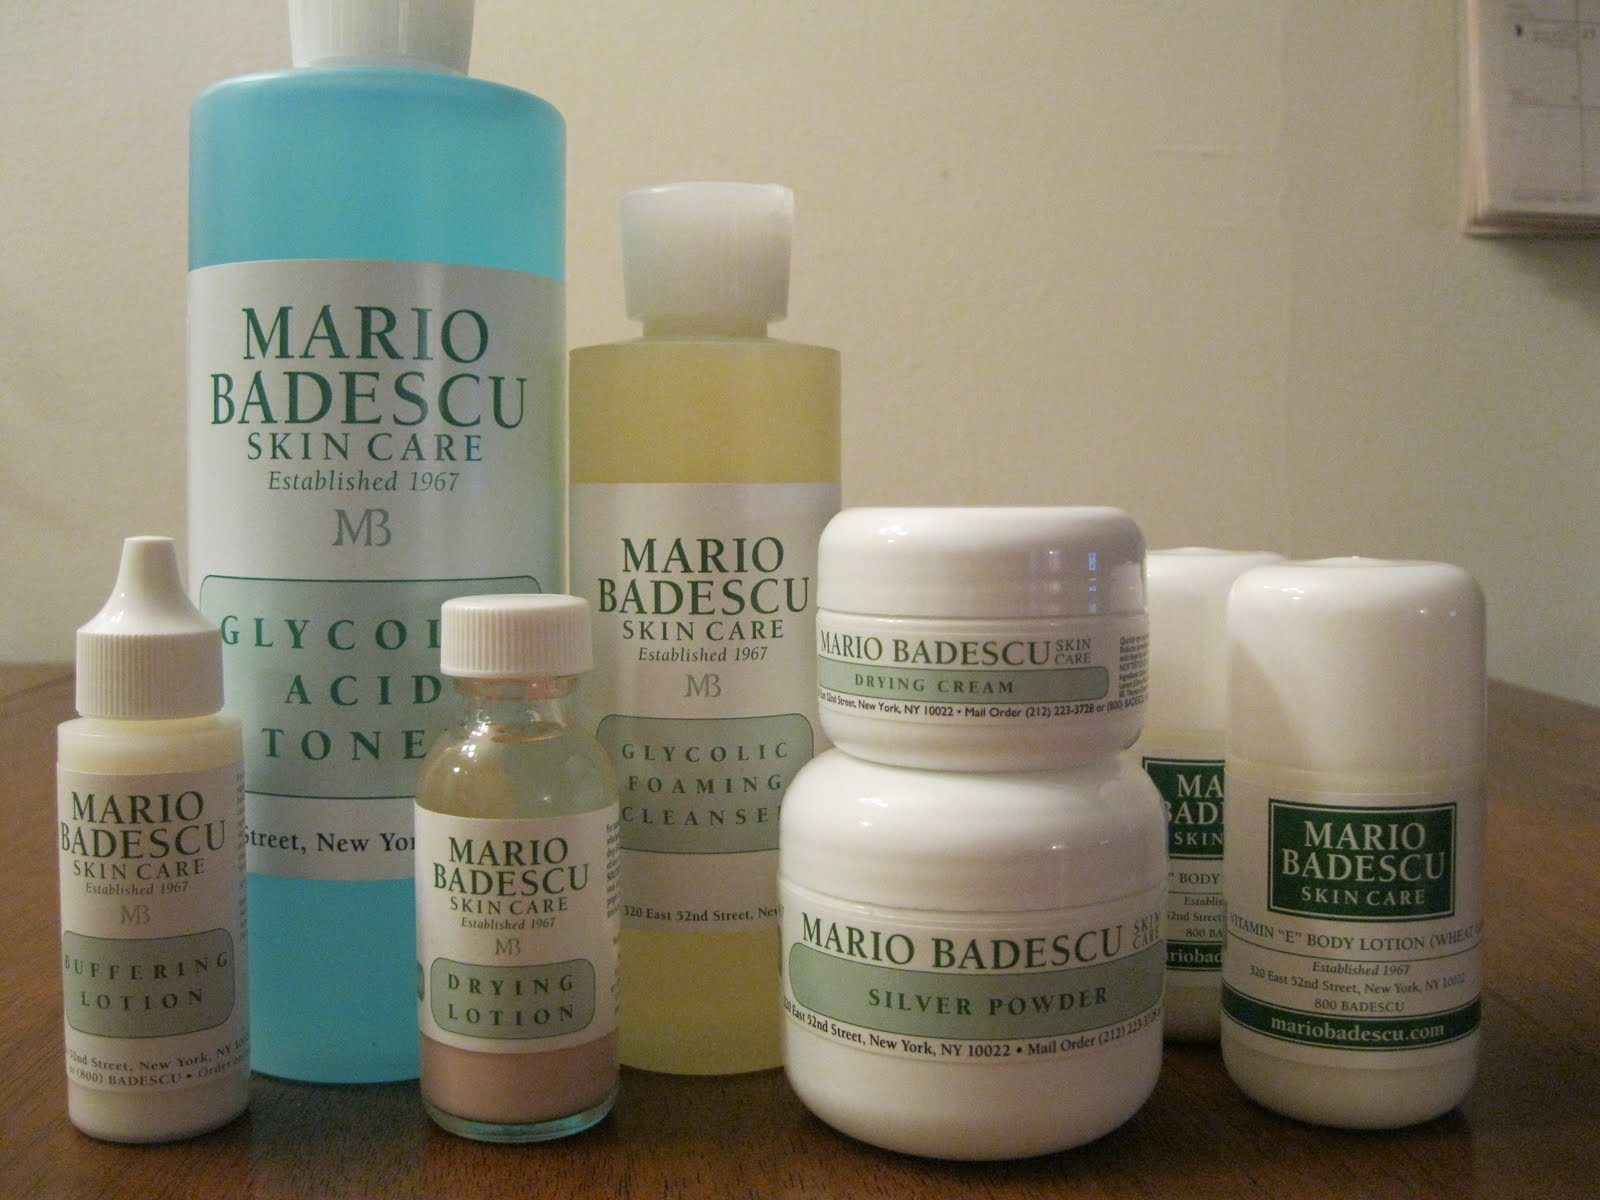 Glycolic Foaming Cleanser by mario badescu #9